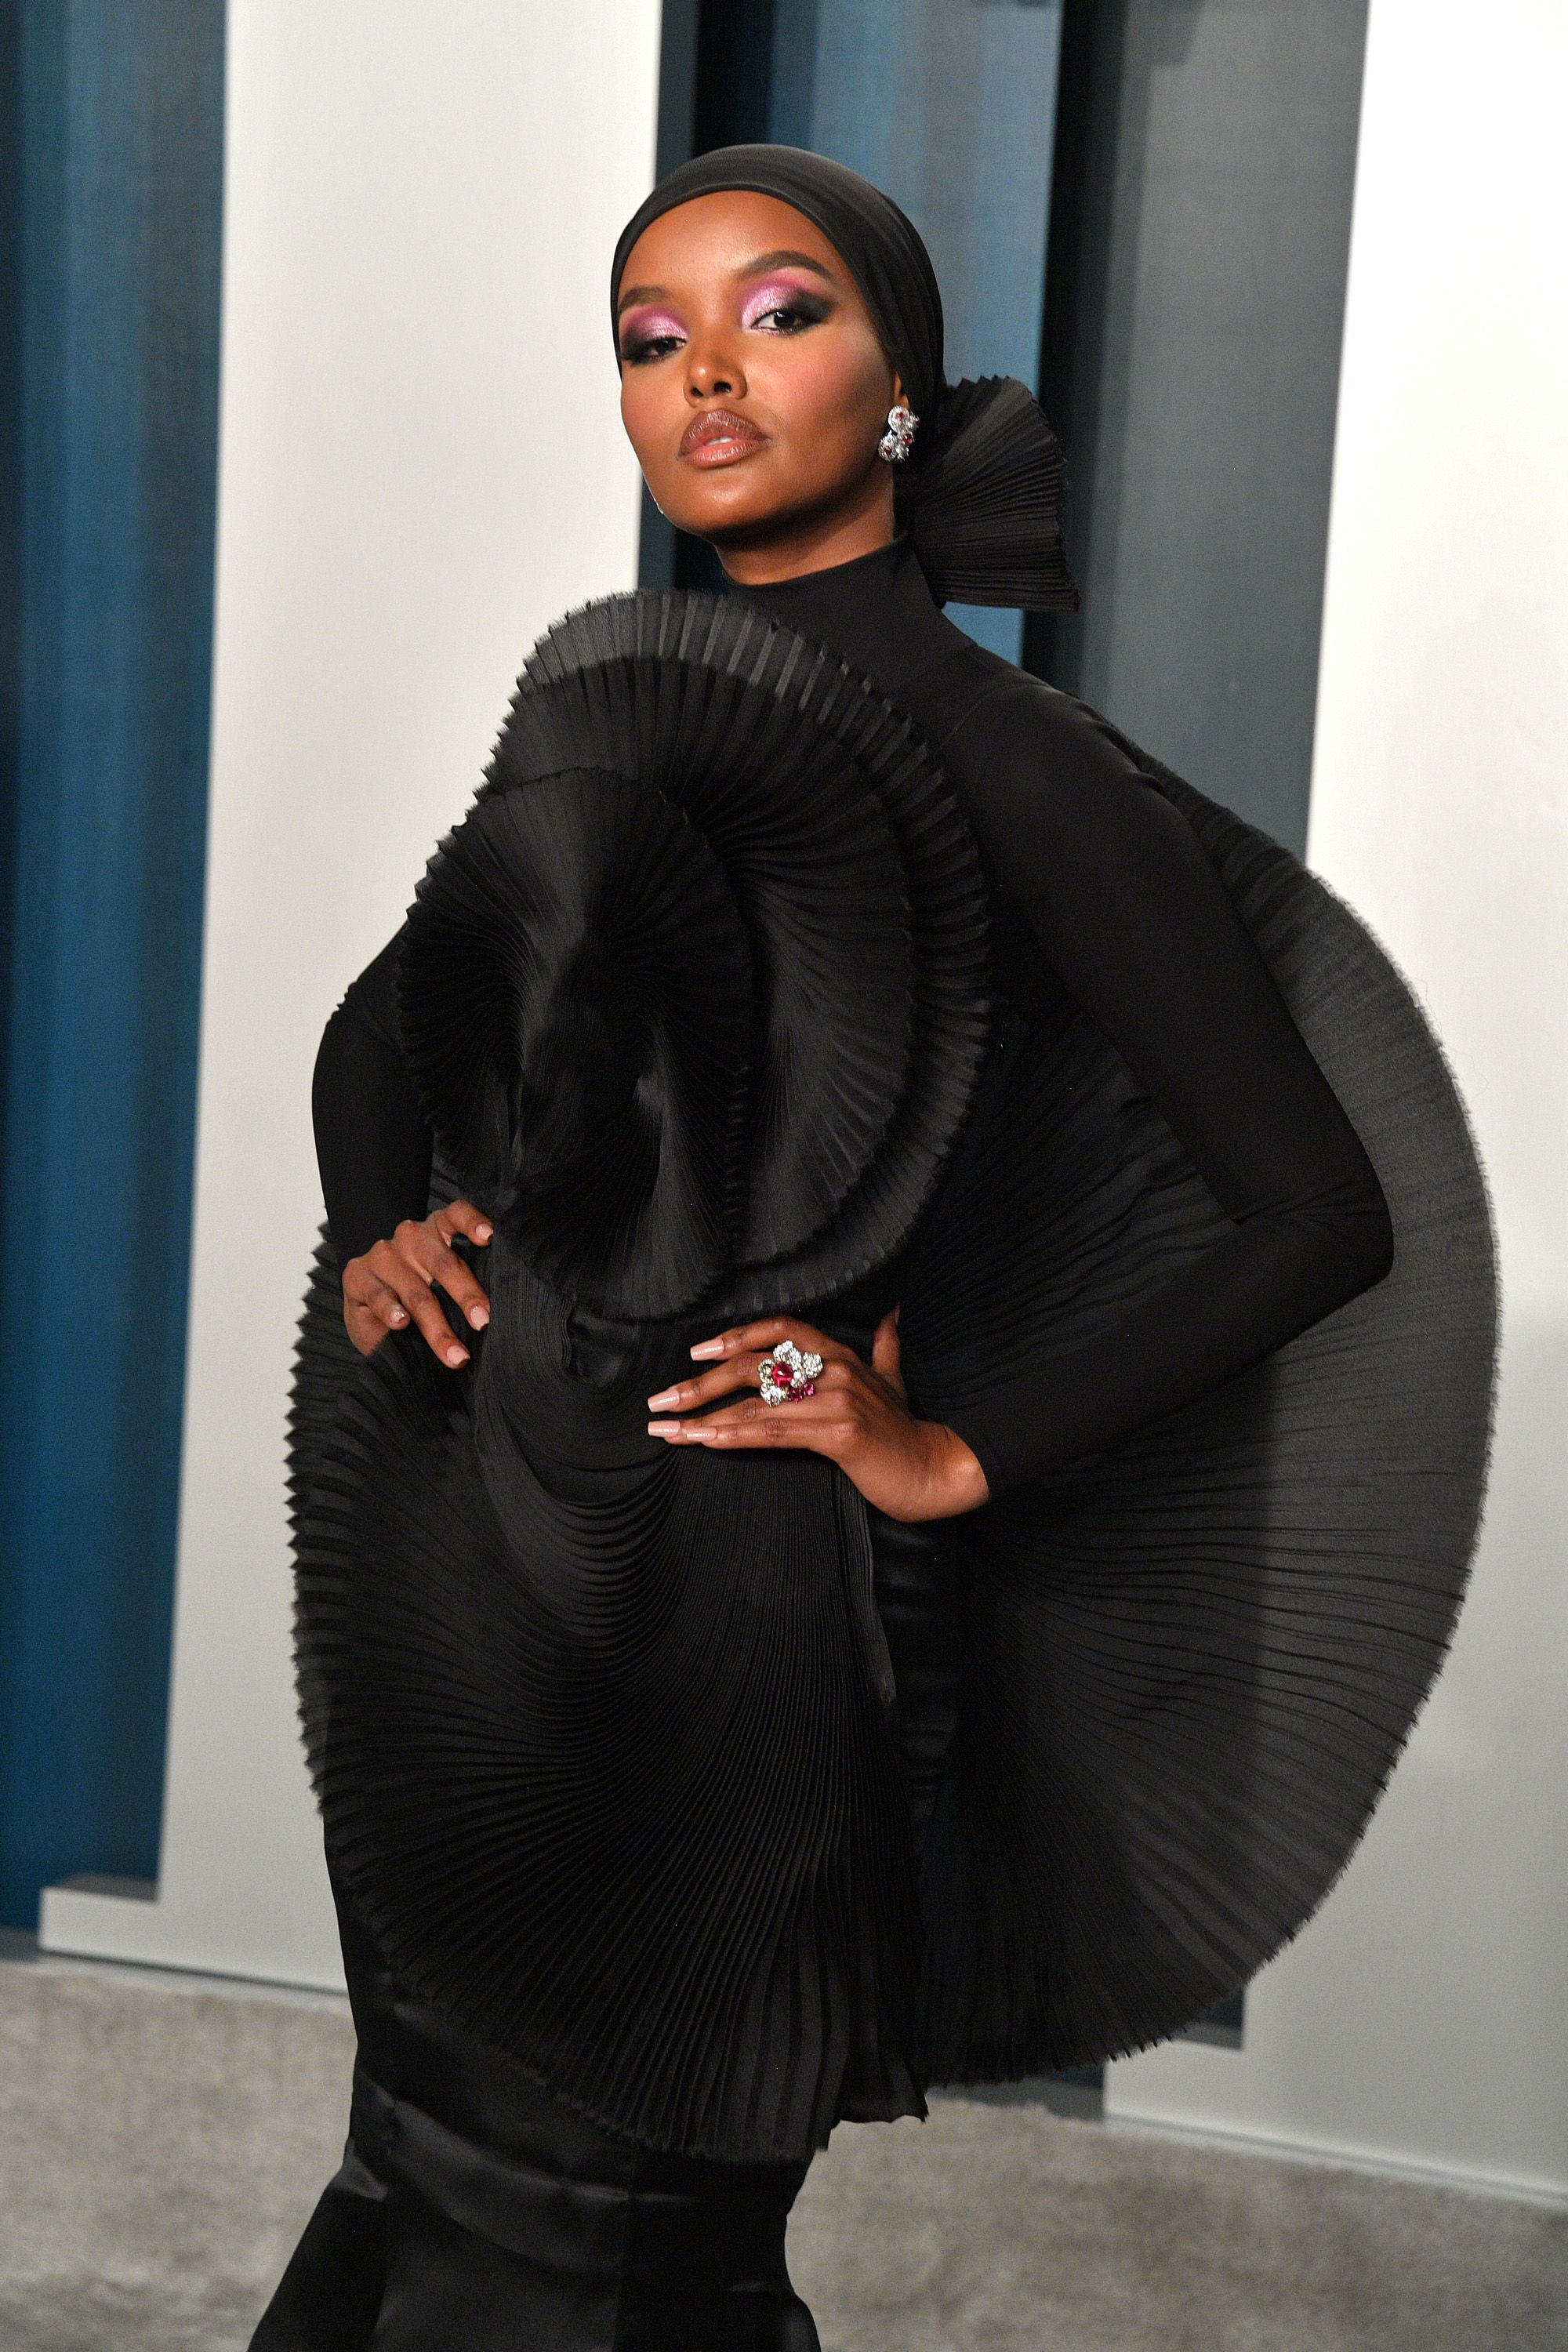 Halima Aden Is Taking a Step Back from Fashion After Her Religious Beliefs Were Compromised